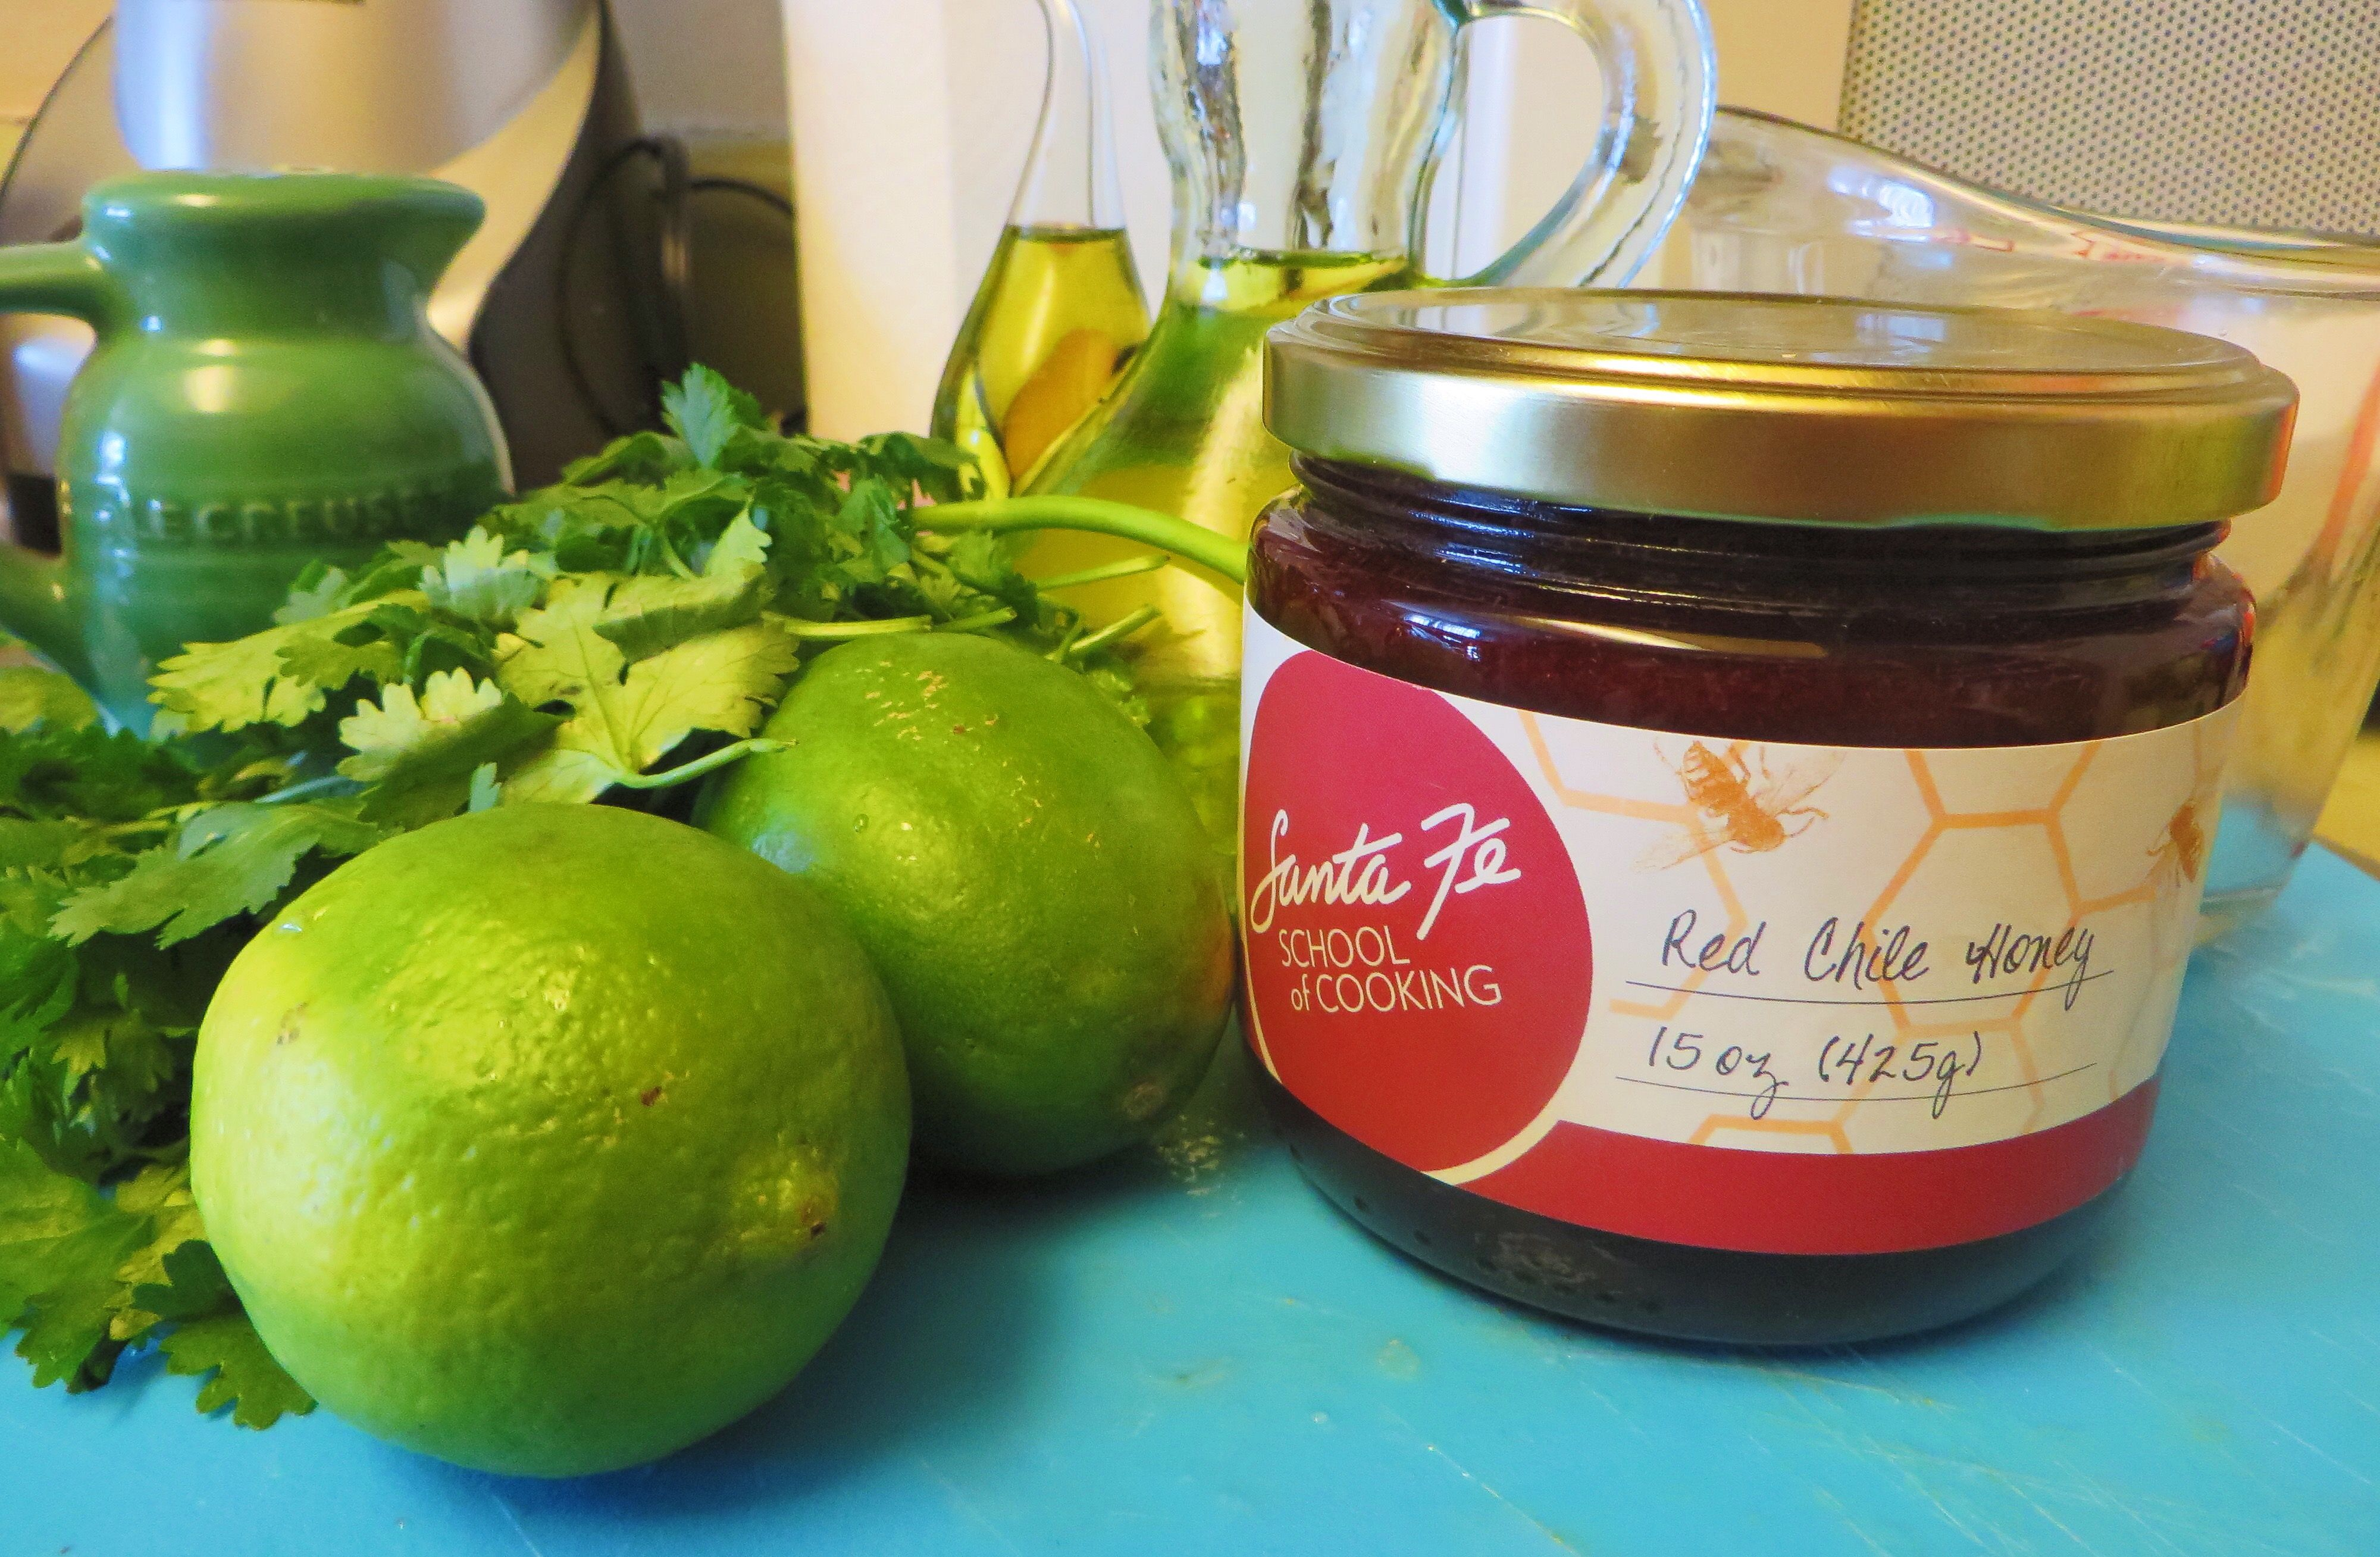 Special delivery! Red chile honey from Santa Fe School of Cooking completes the ingredient list for my salad dressing.